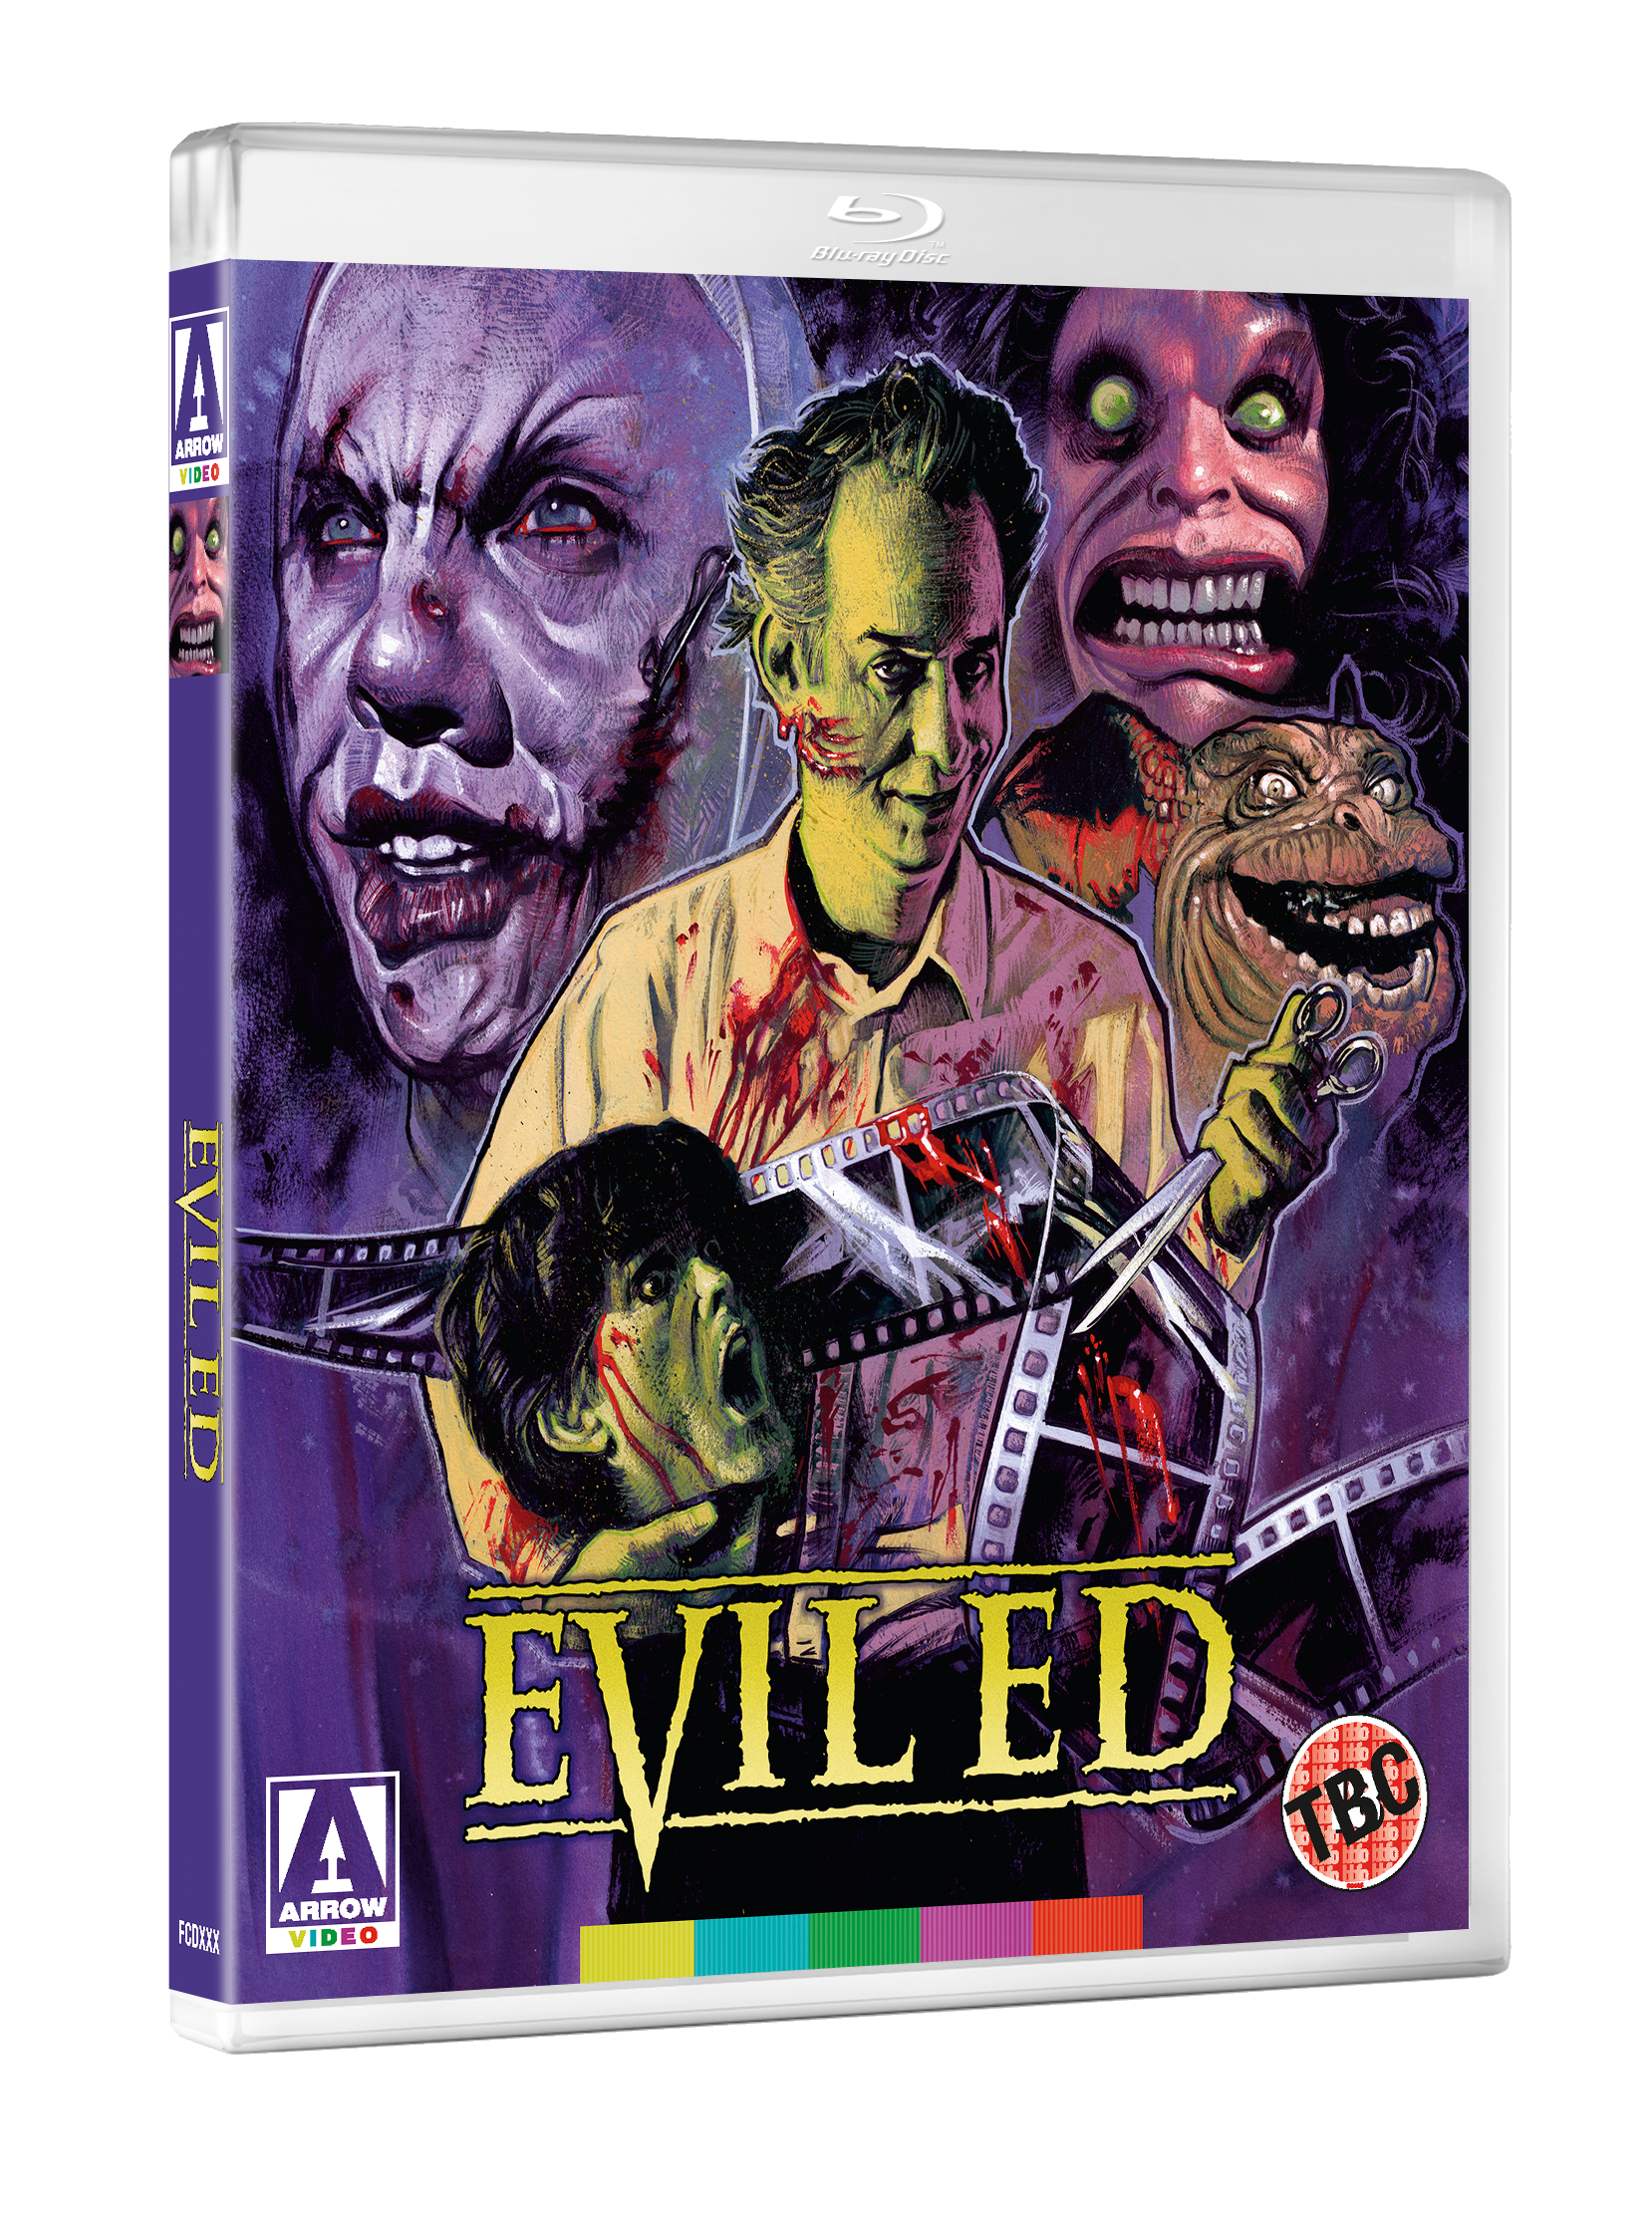 EVIL ED 3D BD UK fAE4ZRF Arrow Video announce May 2017 releases